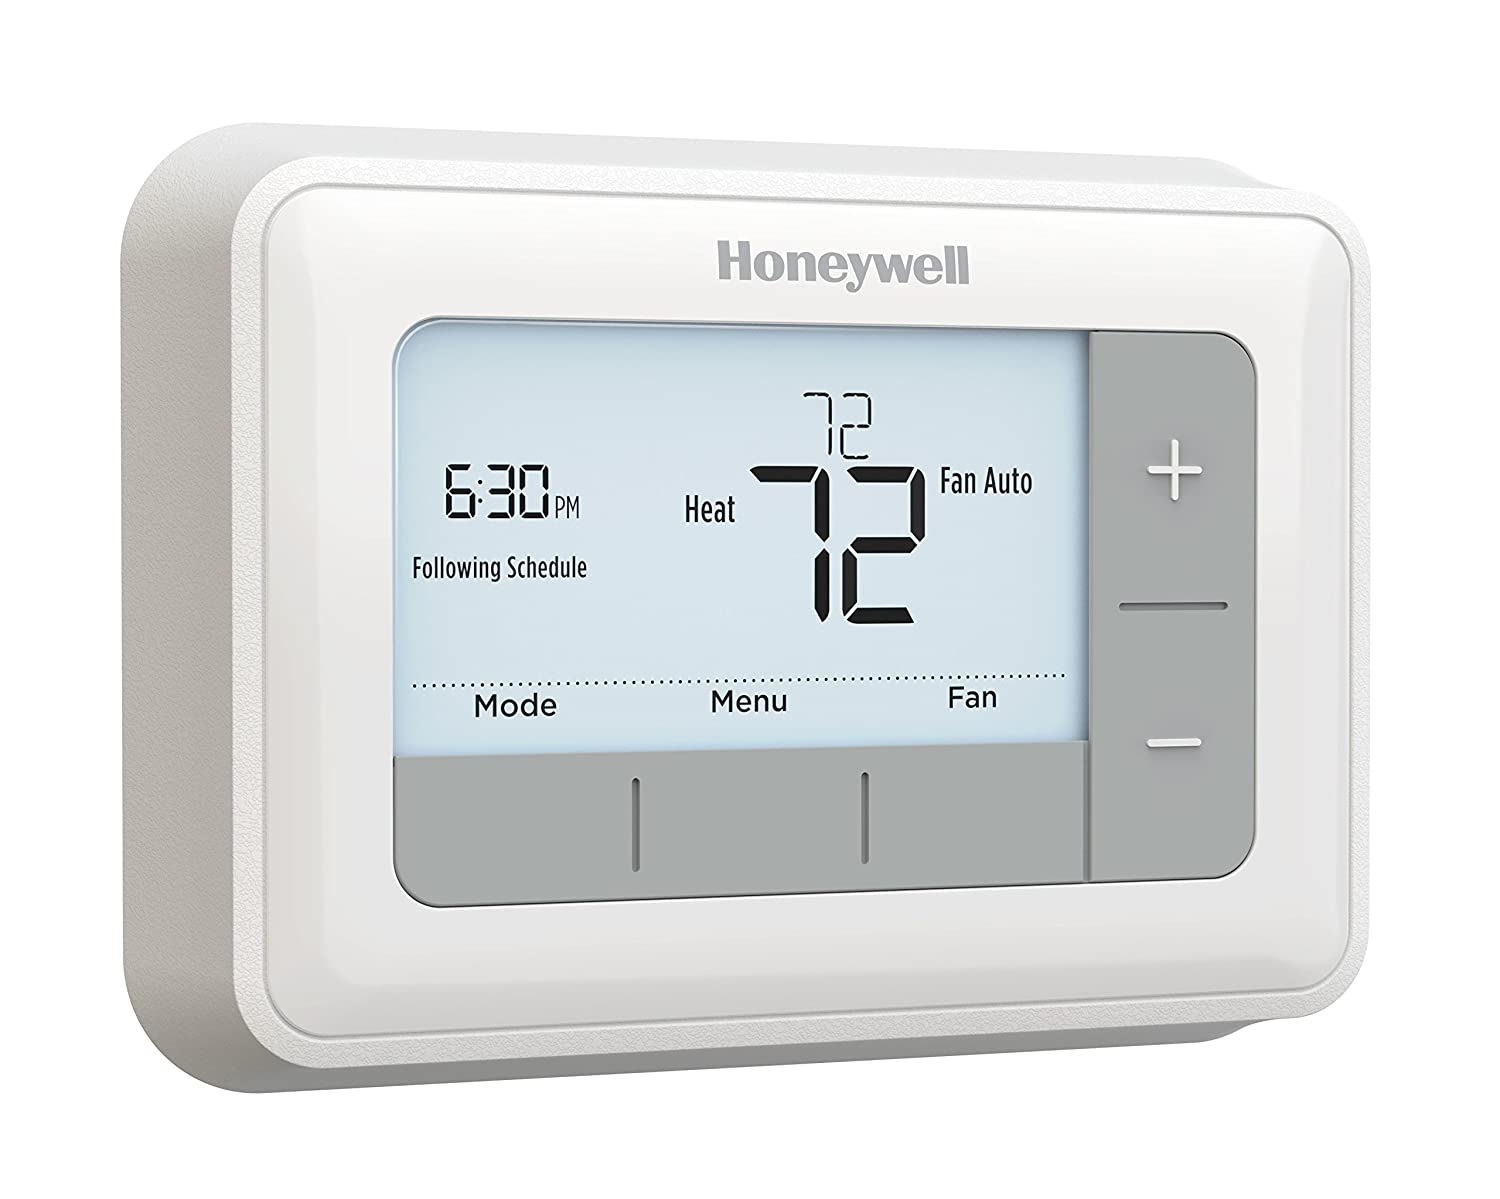 Honeywell RTH7560E1001/E RTH7560E 7-Day Flexible Programmable  Thermostat-Extra-Large Backlit Display - - Amazon.com